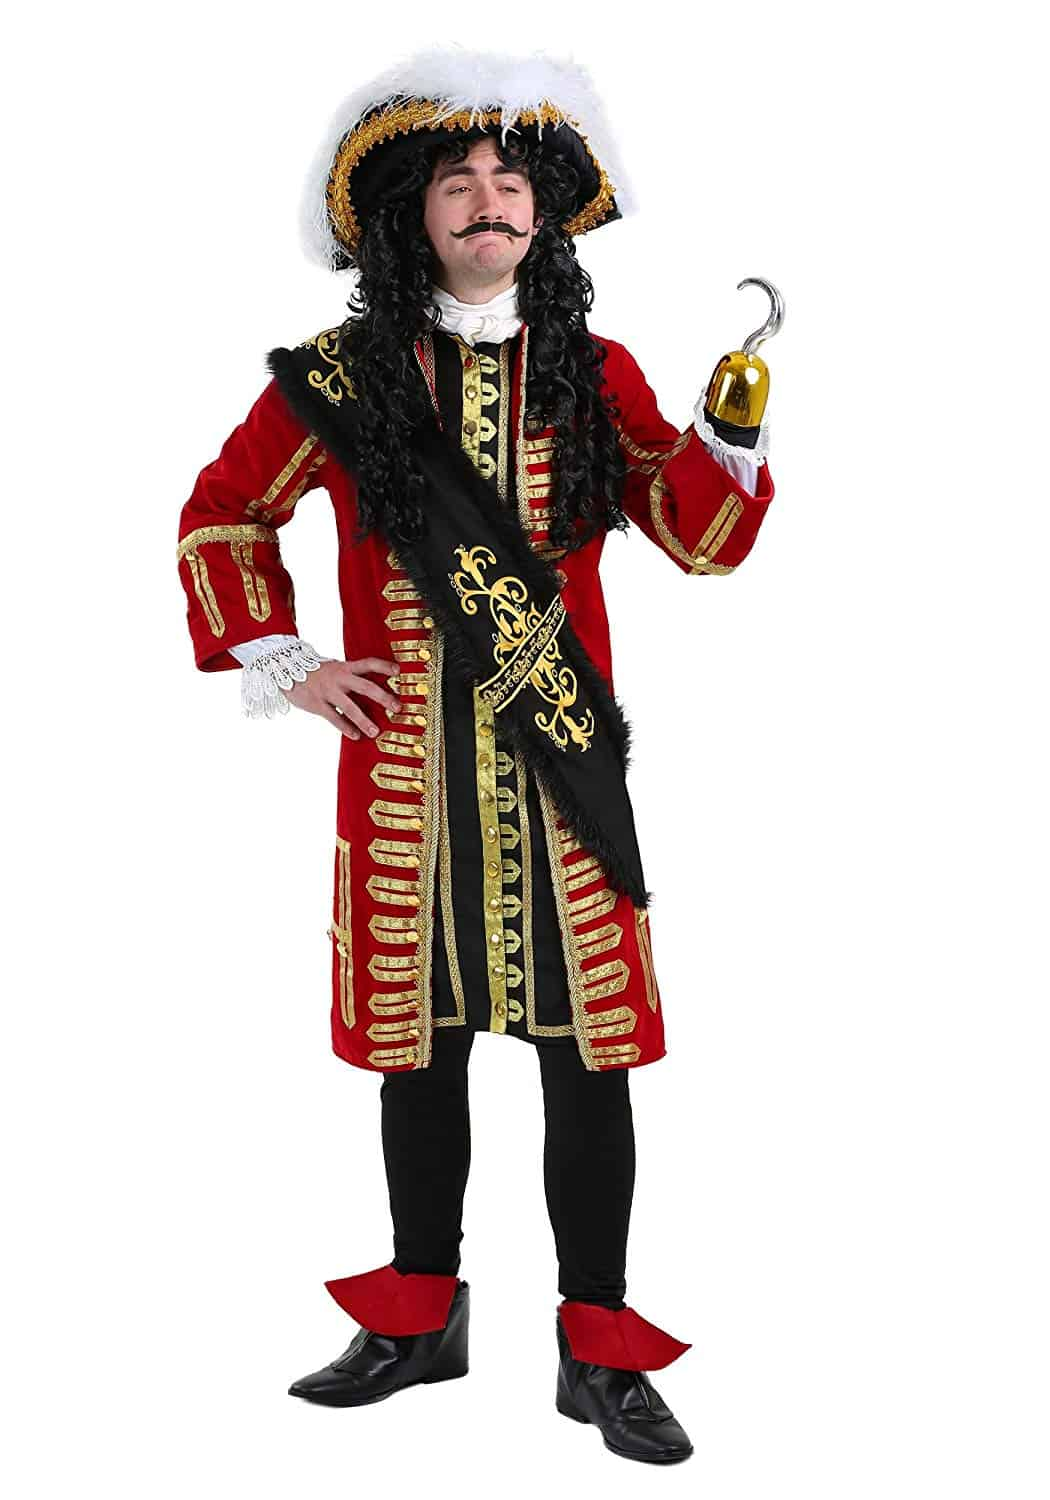 Boys Kids Childs PIRATE Fancy Dress Costume Party Outfit Captain Hook Age 4-12